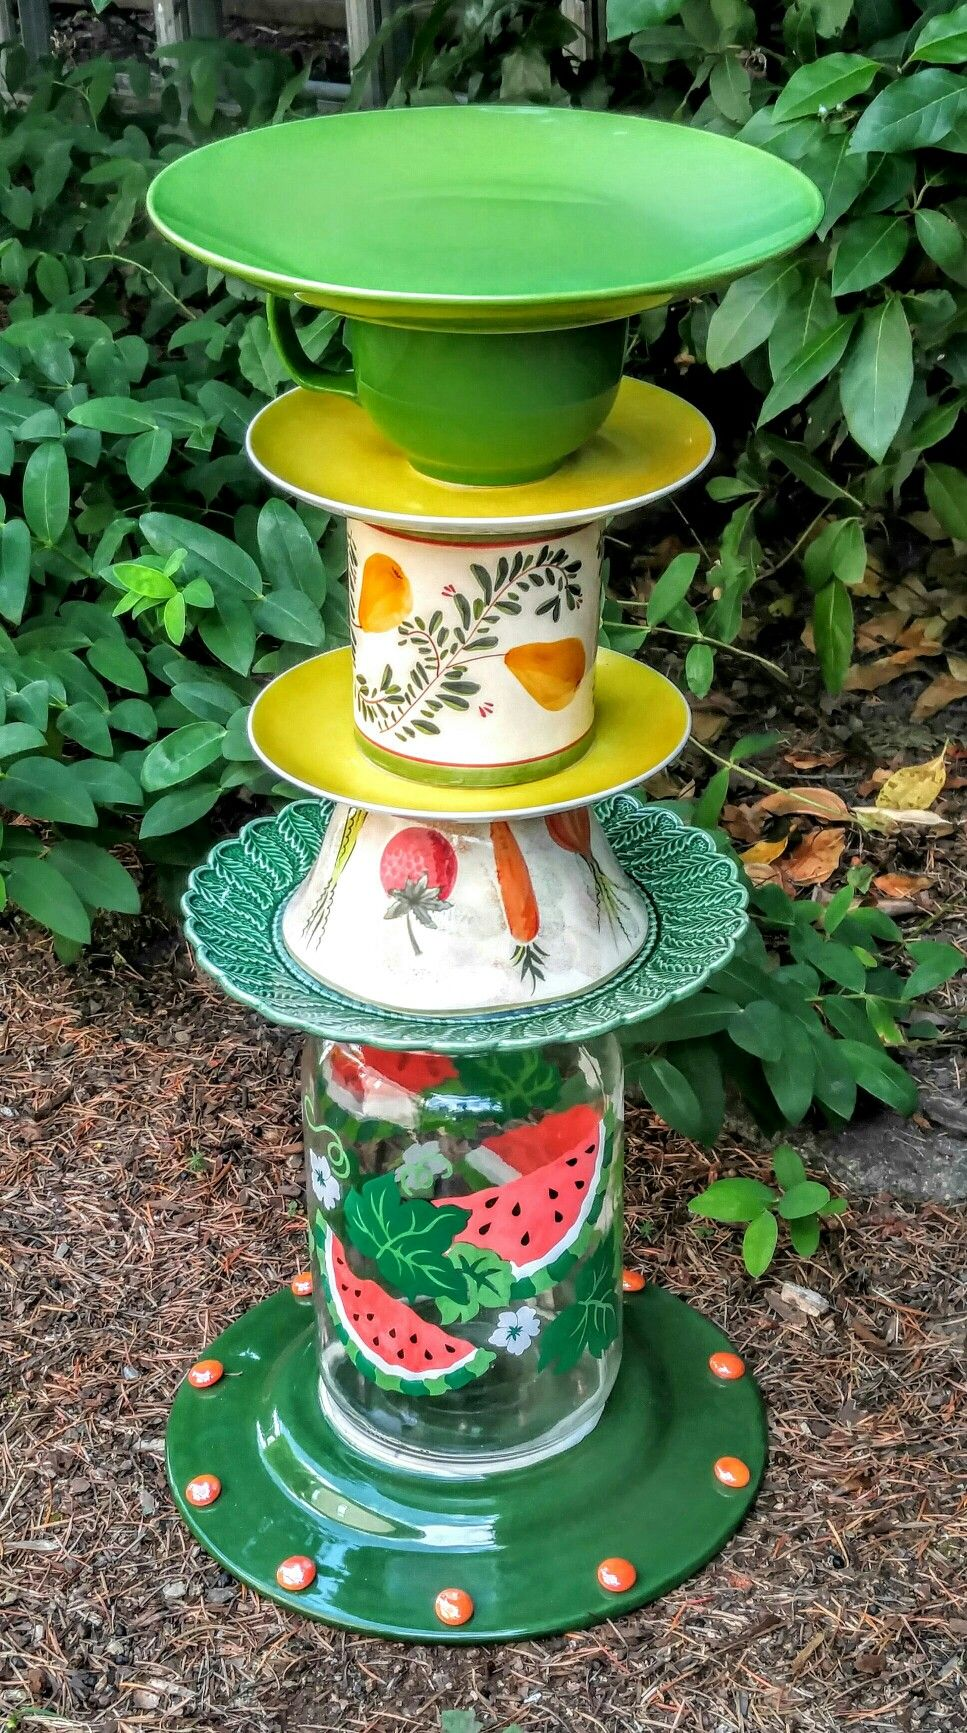 Thrifted items upcycled into birdbaths or garden decor. Becky Clardy ...